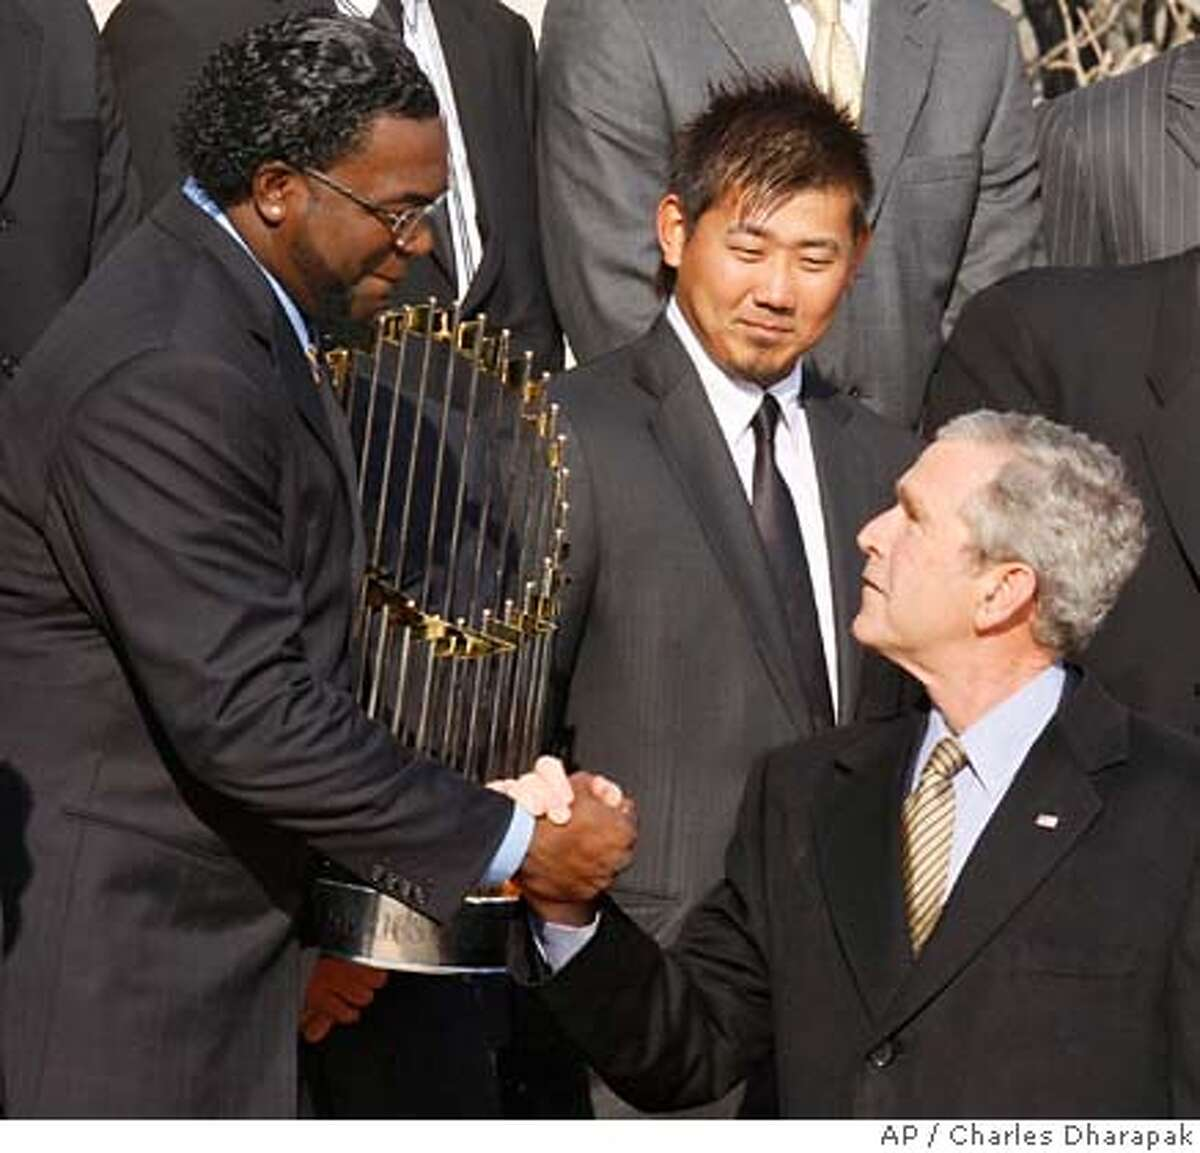 President Bush shakes hands with Boston Red Sox designated hitter David Ortiz as pitcher Daisuke Matsuzaka of Japan, looks on during a ceremony honoring the 2007 World Series champions, Wednesday, Feb. 27, 2008, on the South Lawn of the White House in Washington. (AP Photo/Charles Dharapak)